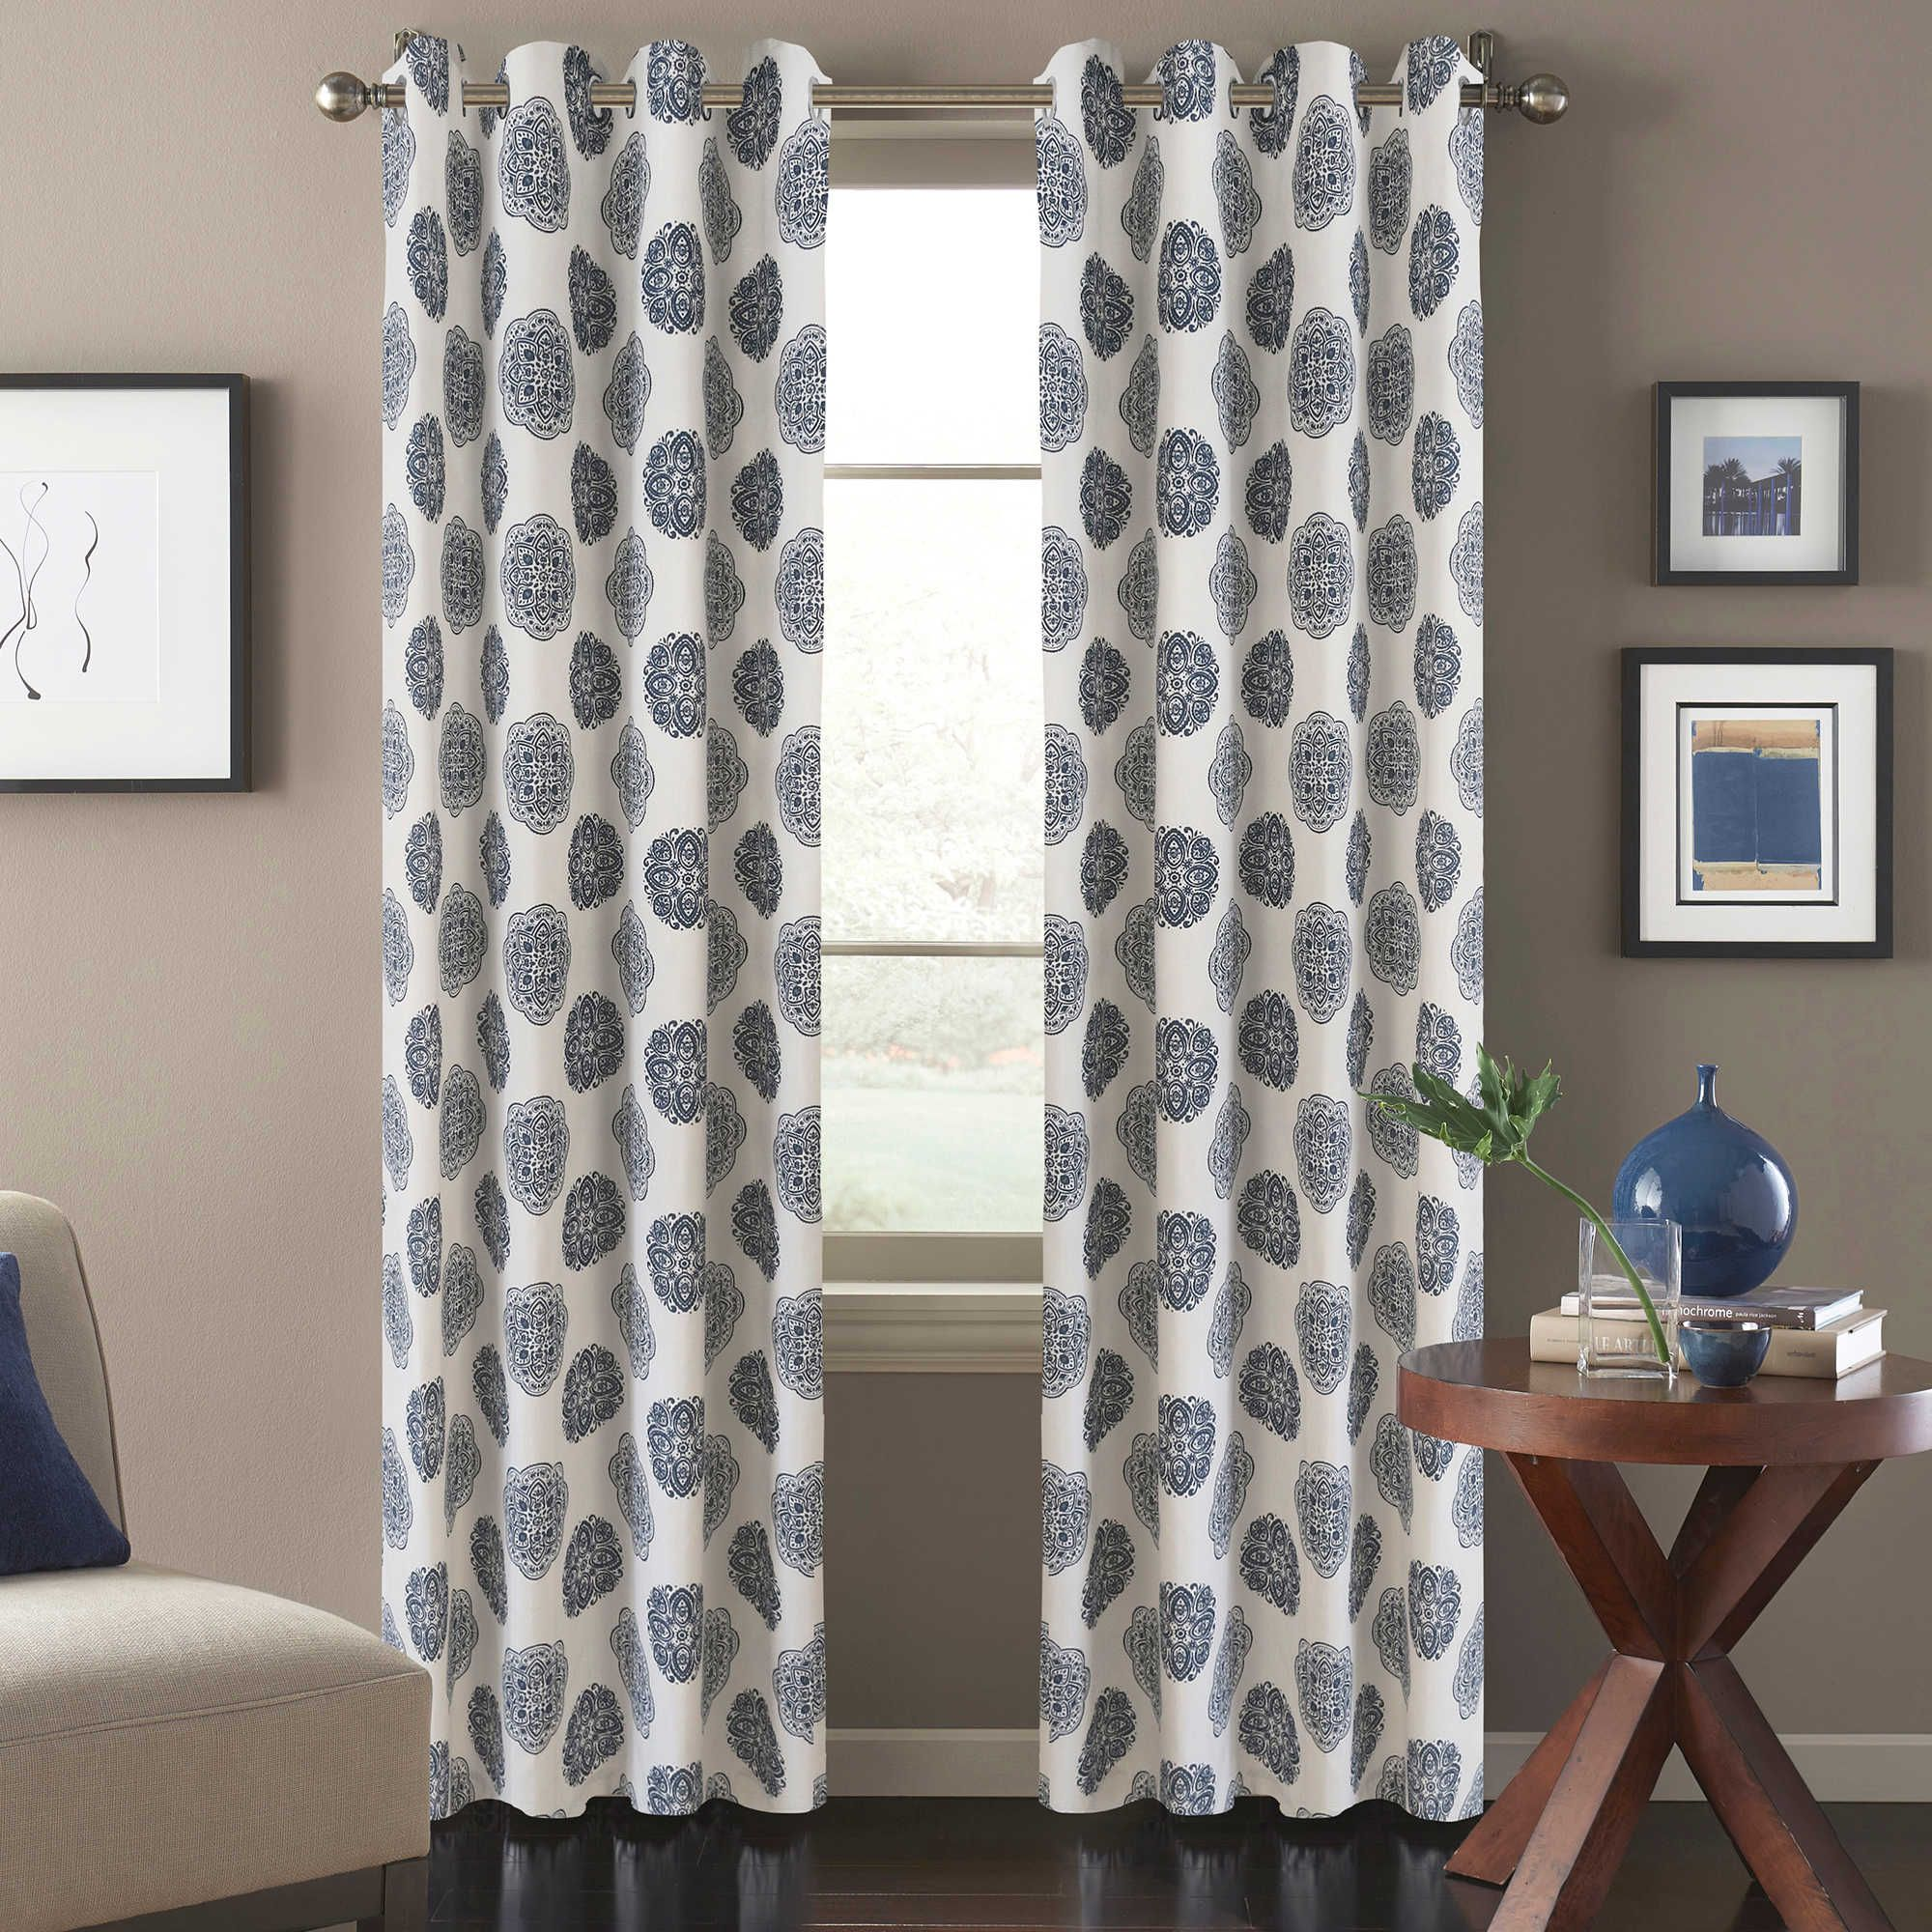 Bed bath and beyond window curtains  orion window curtain panel in blue  garage makeover  pinterest